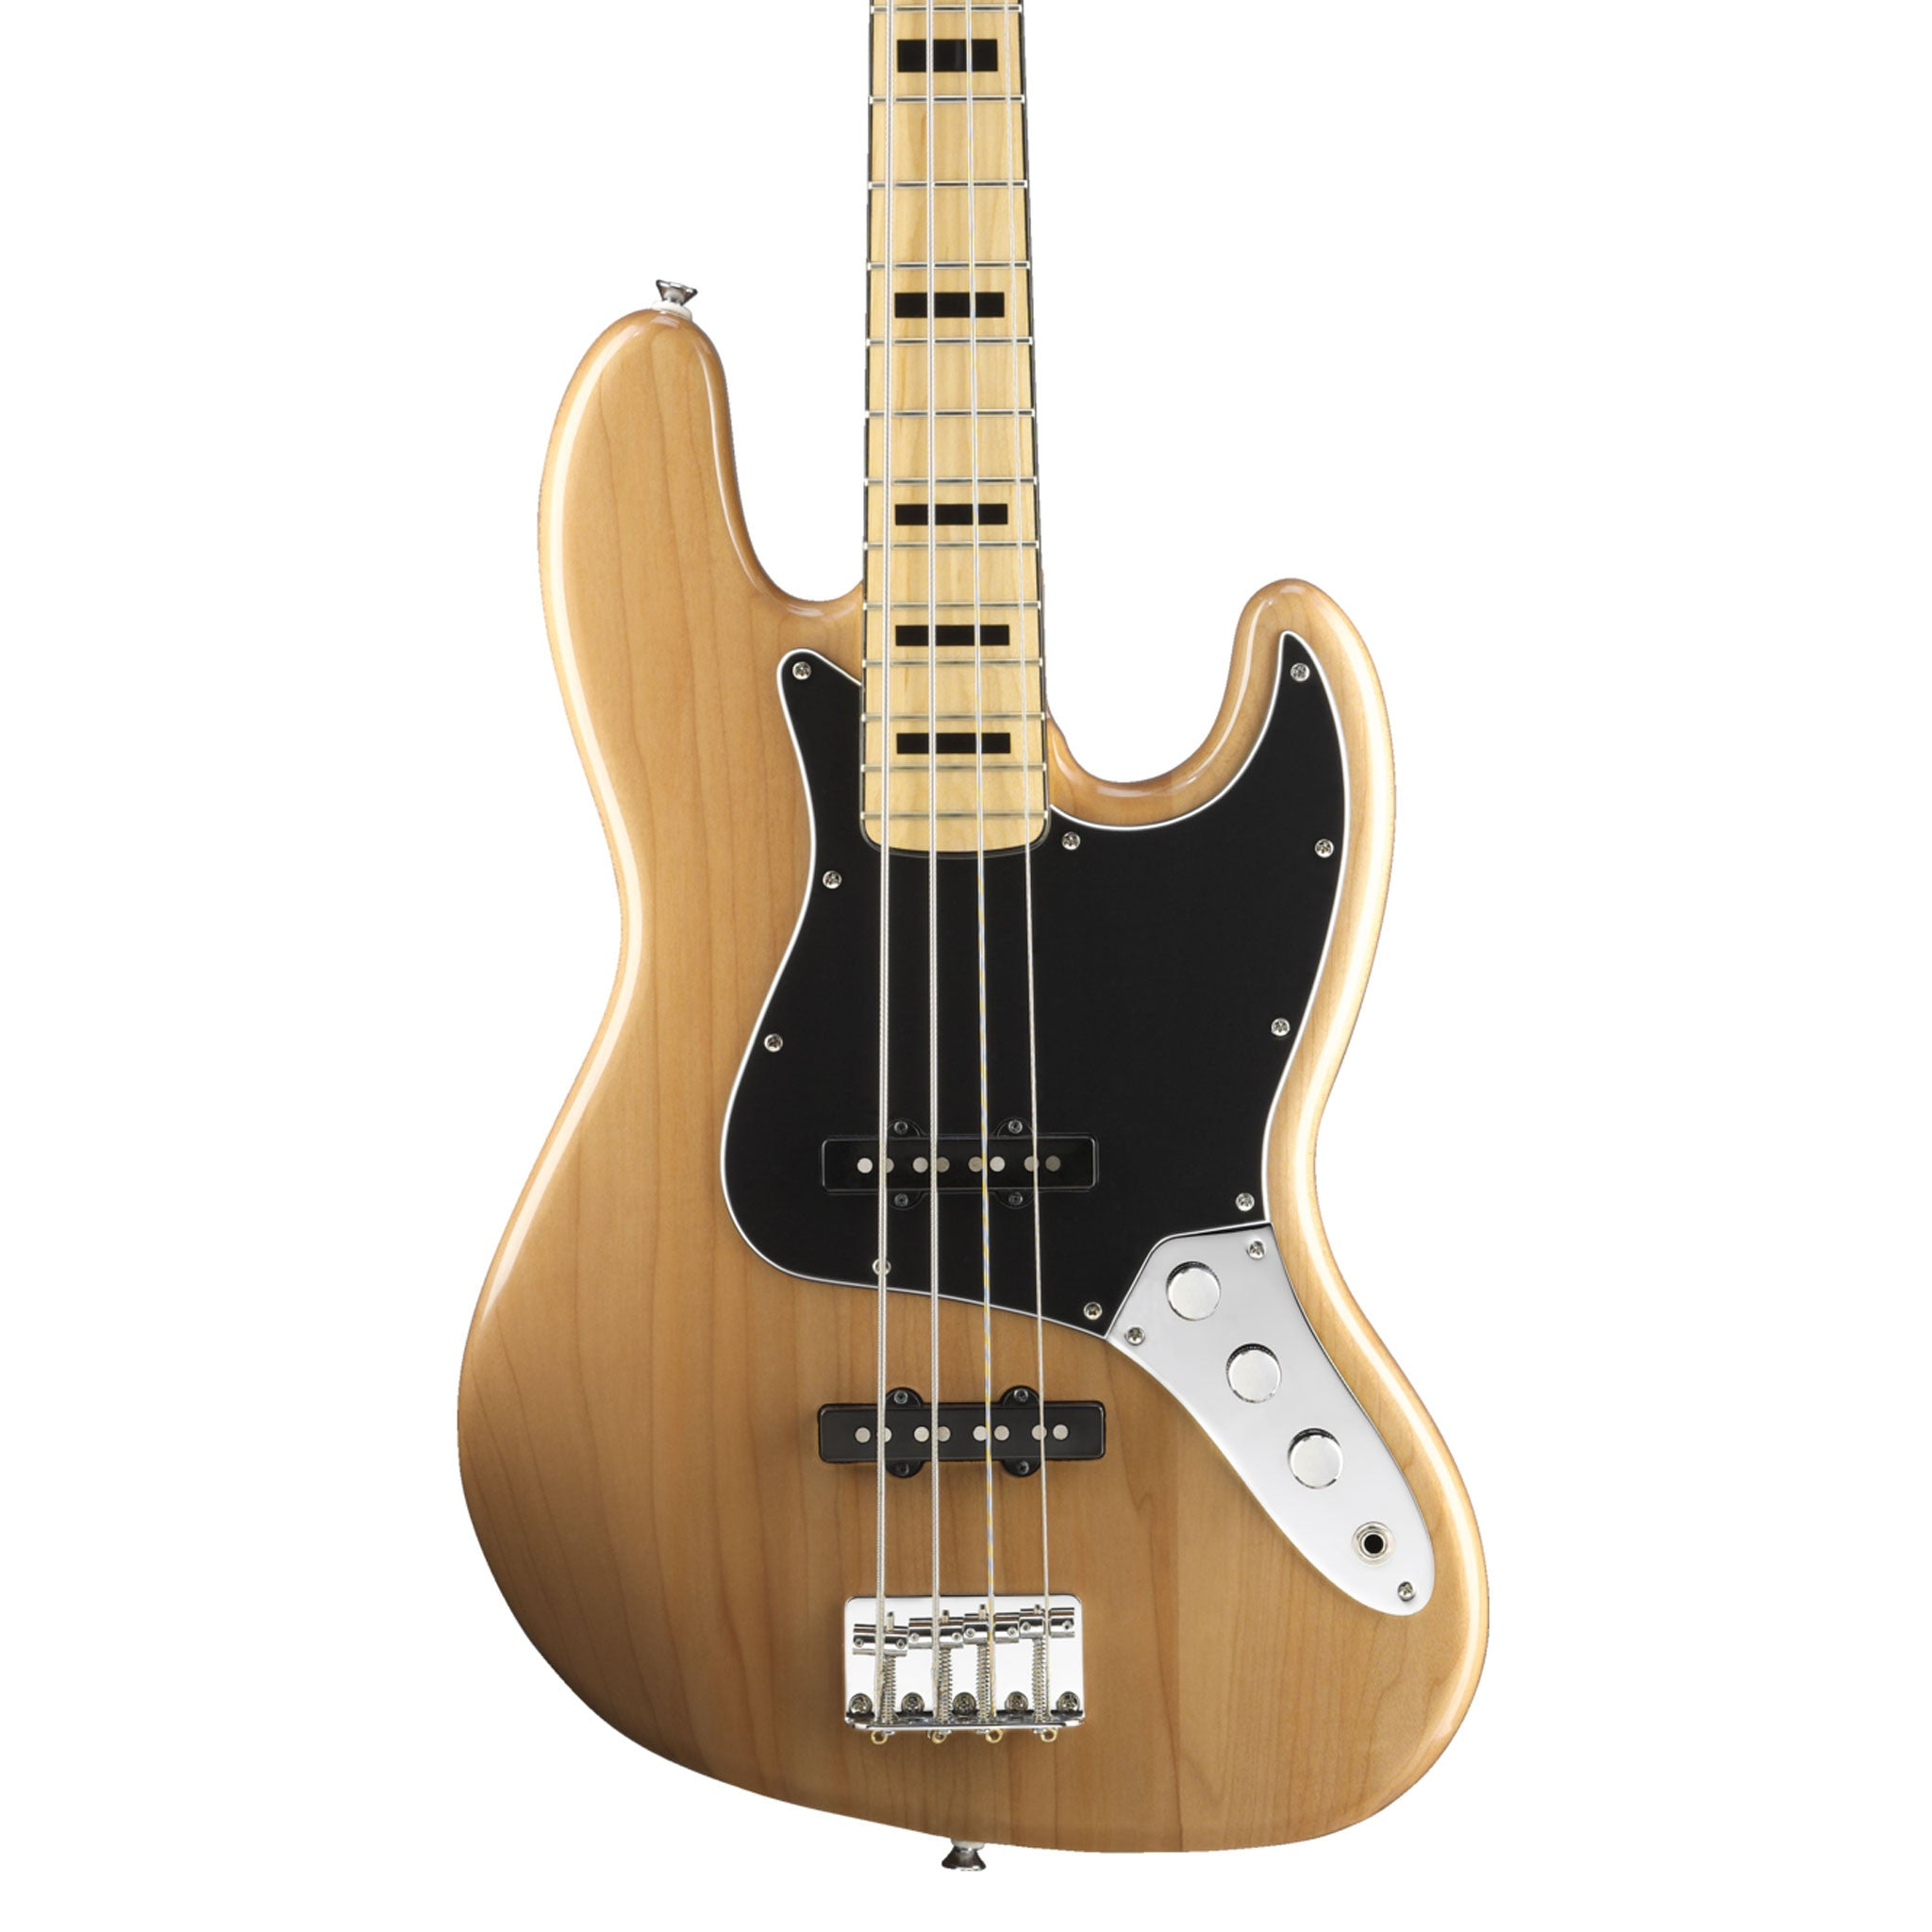 squier vintage modified jazz bass 39 70s mass street music store. Black Bedroom Furniture Sets. Home Design Ideas